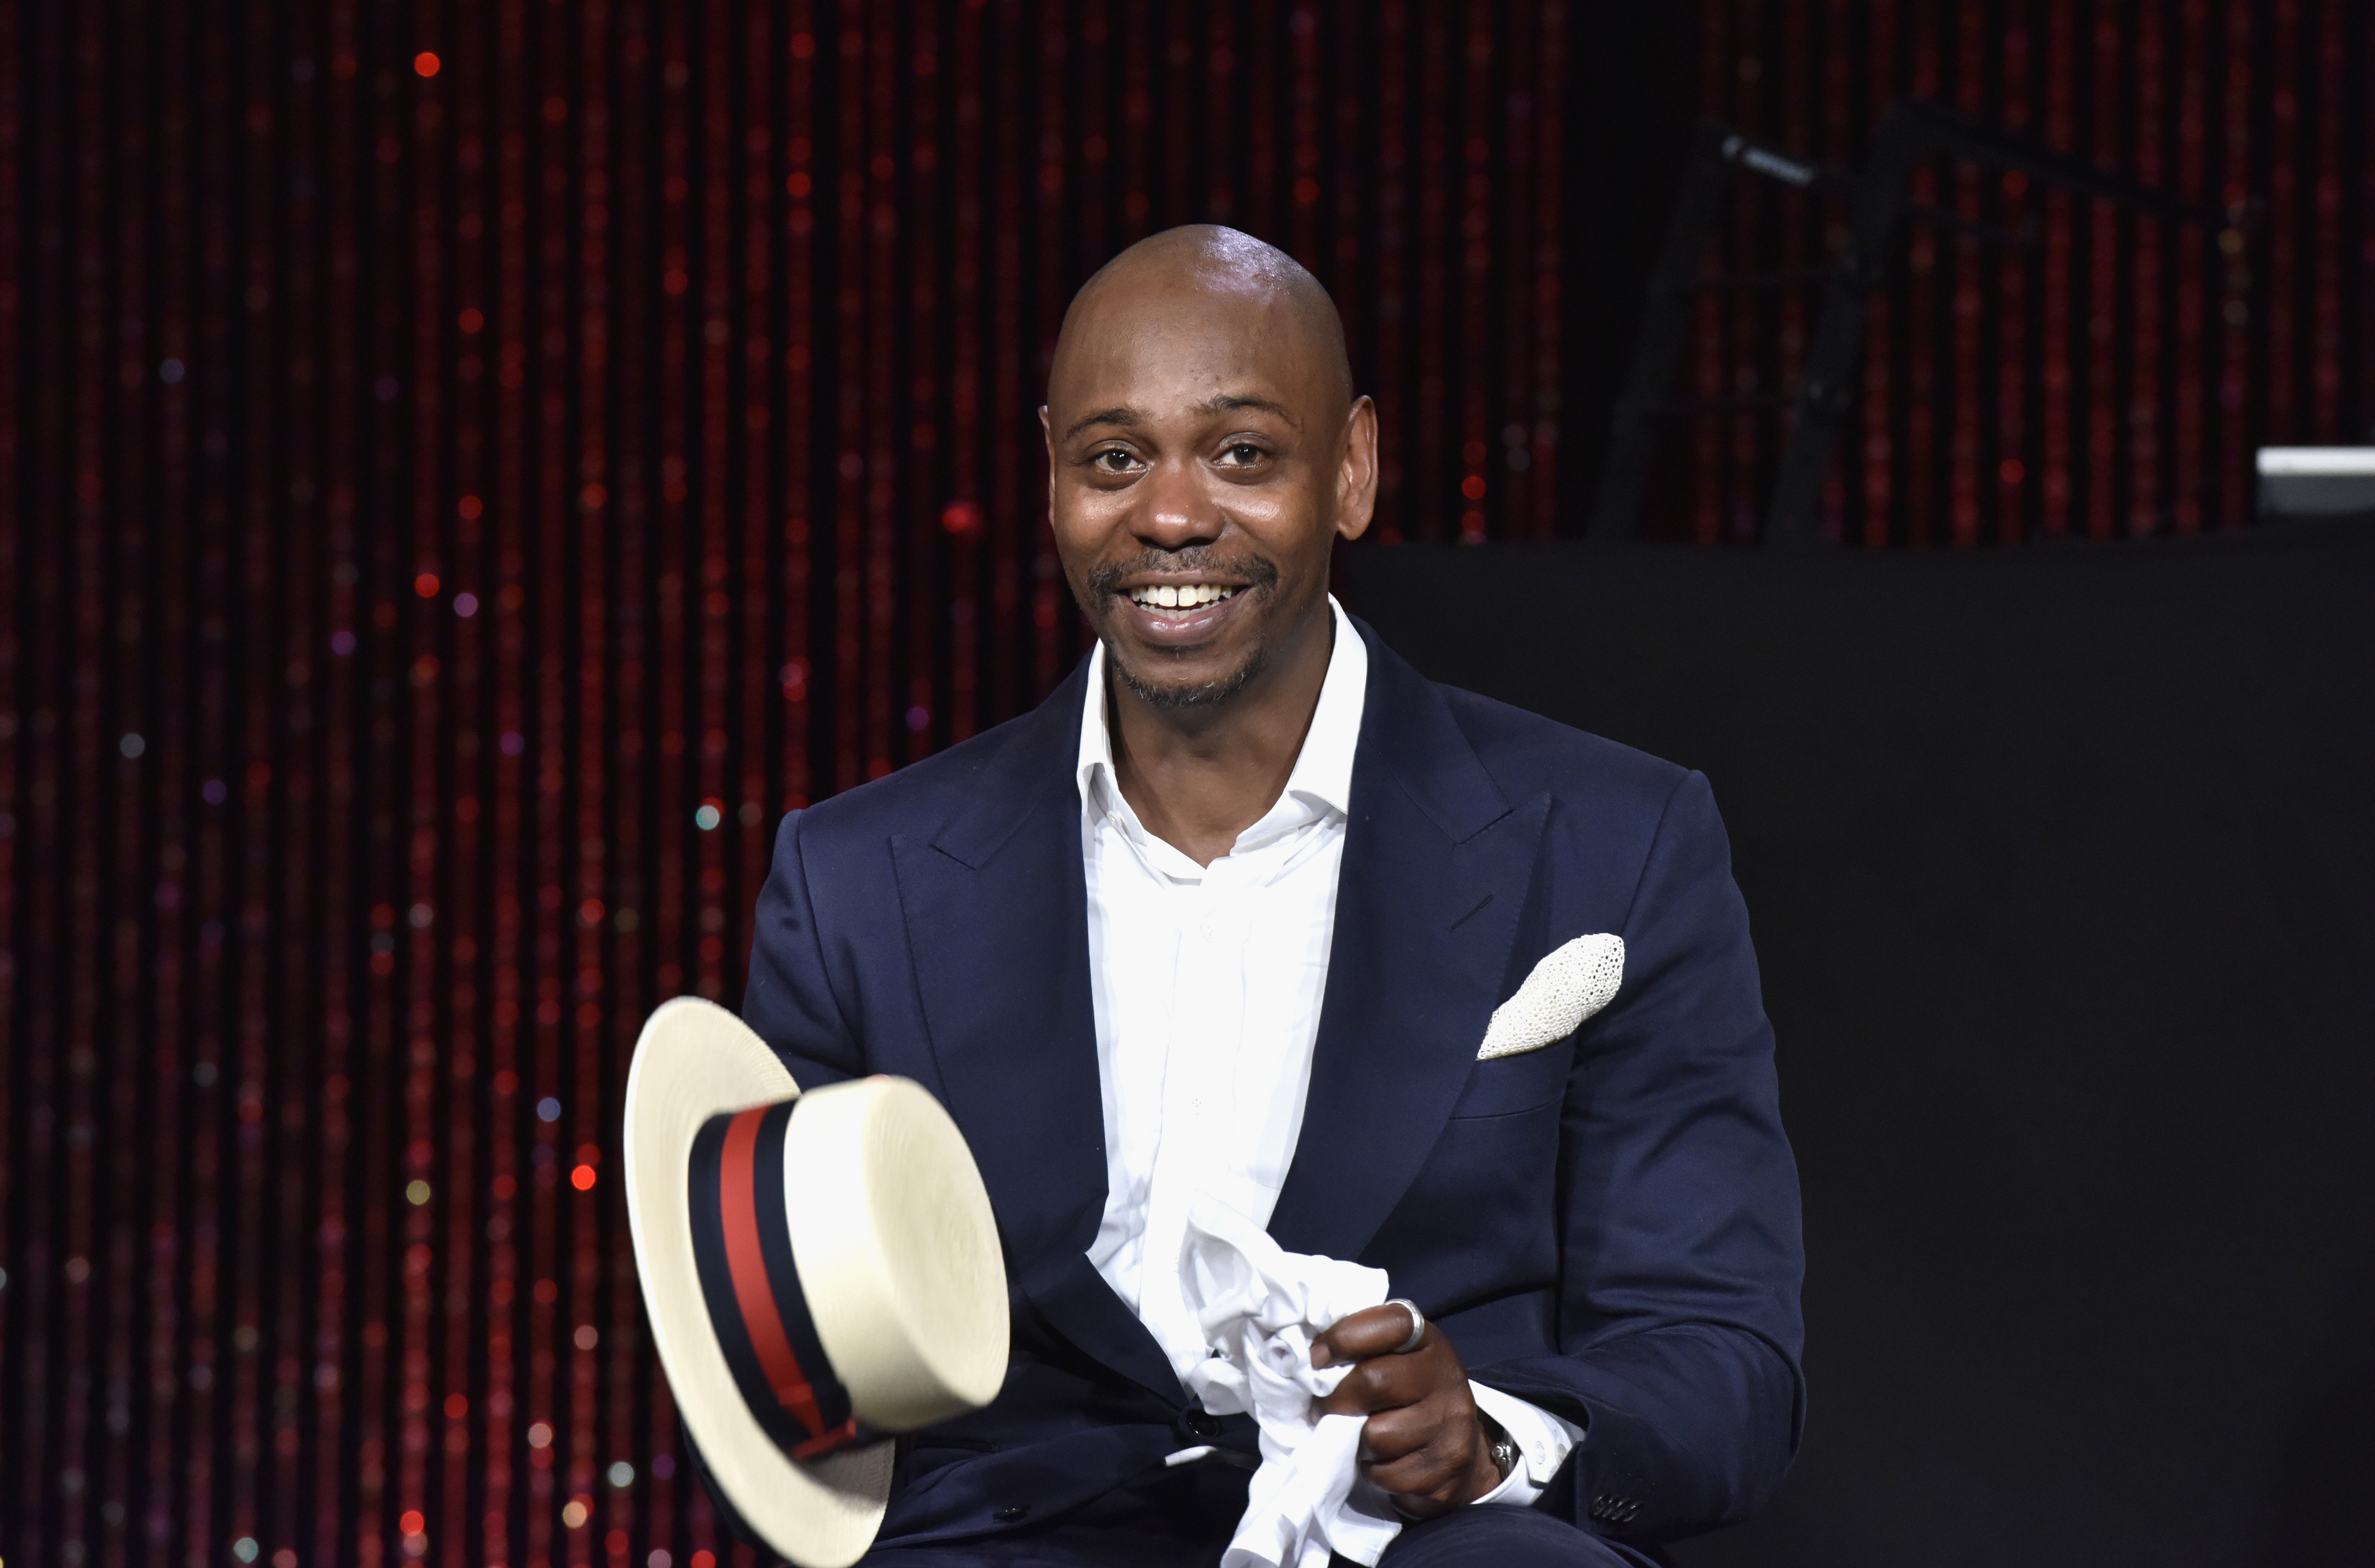 YES! Dave Chappelle is *finally* hosting 'SNL' in case you were wondering if dreams come true